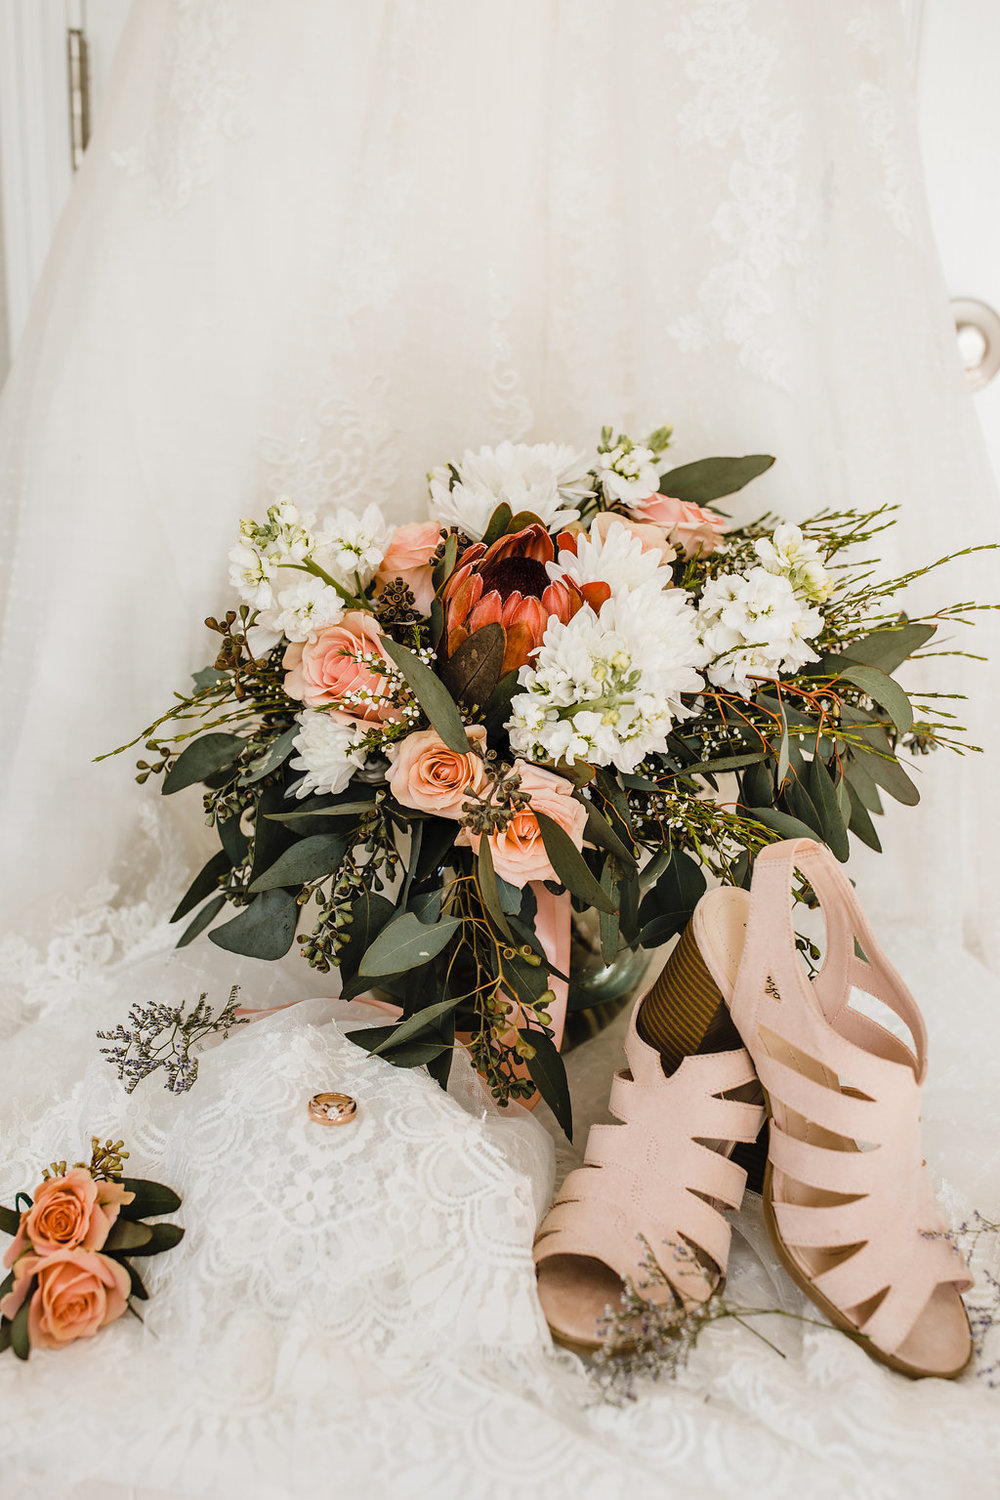 wedding day details bride sandals bouquet and ring professional utah wedding photographer calli richards